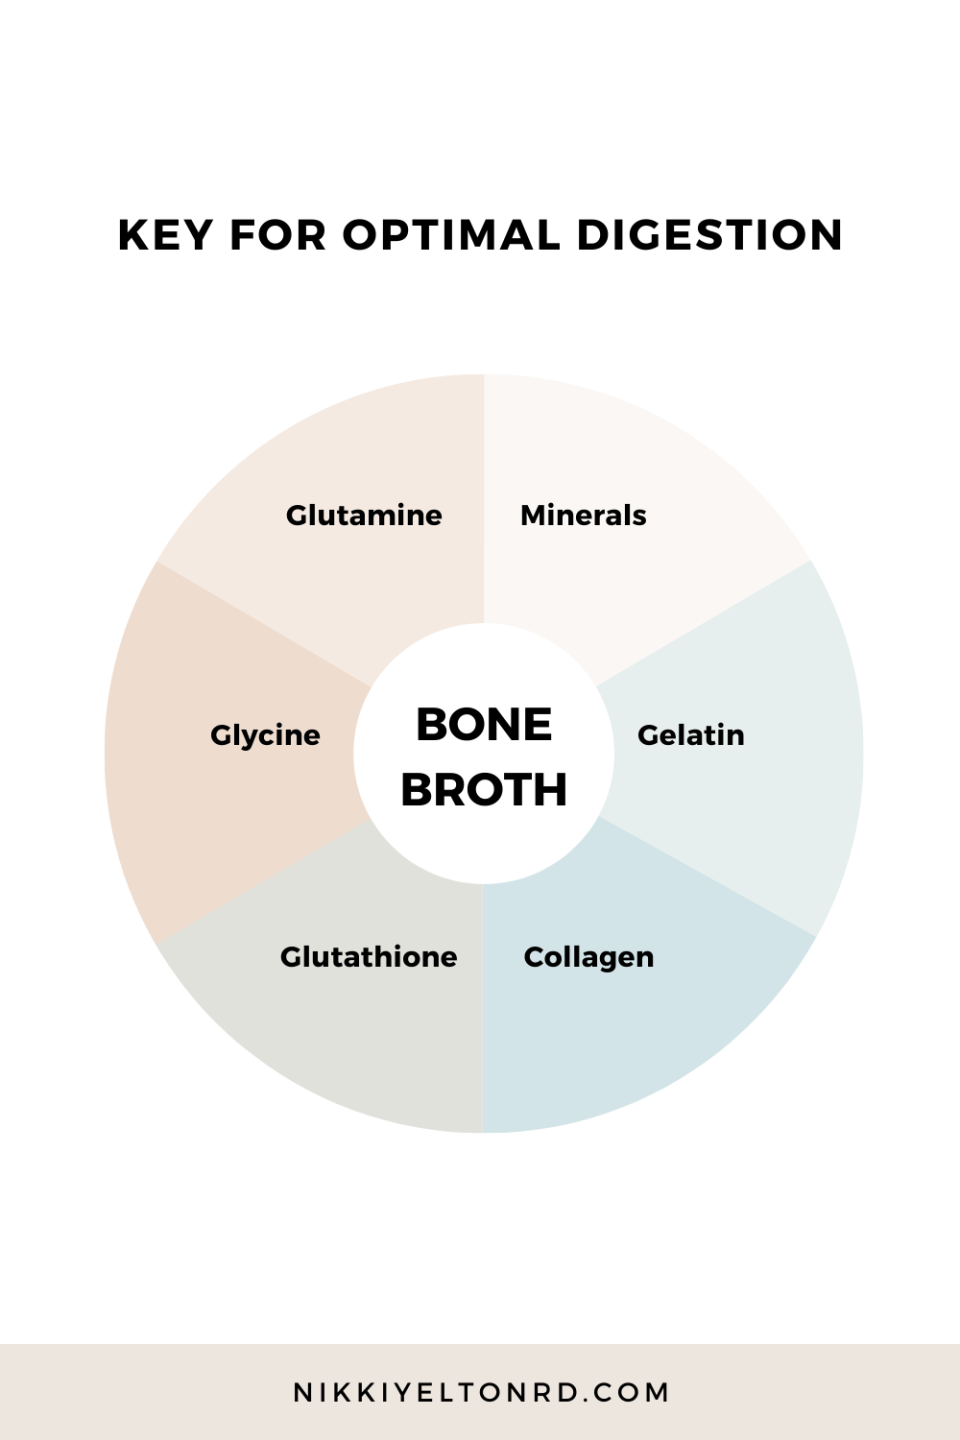 One of the benefits of bone broth is it is key for optimal digestion